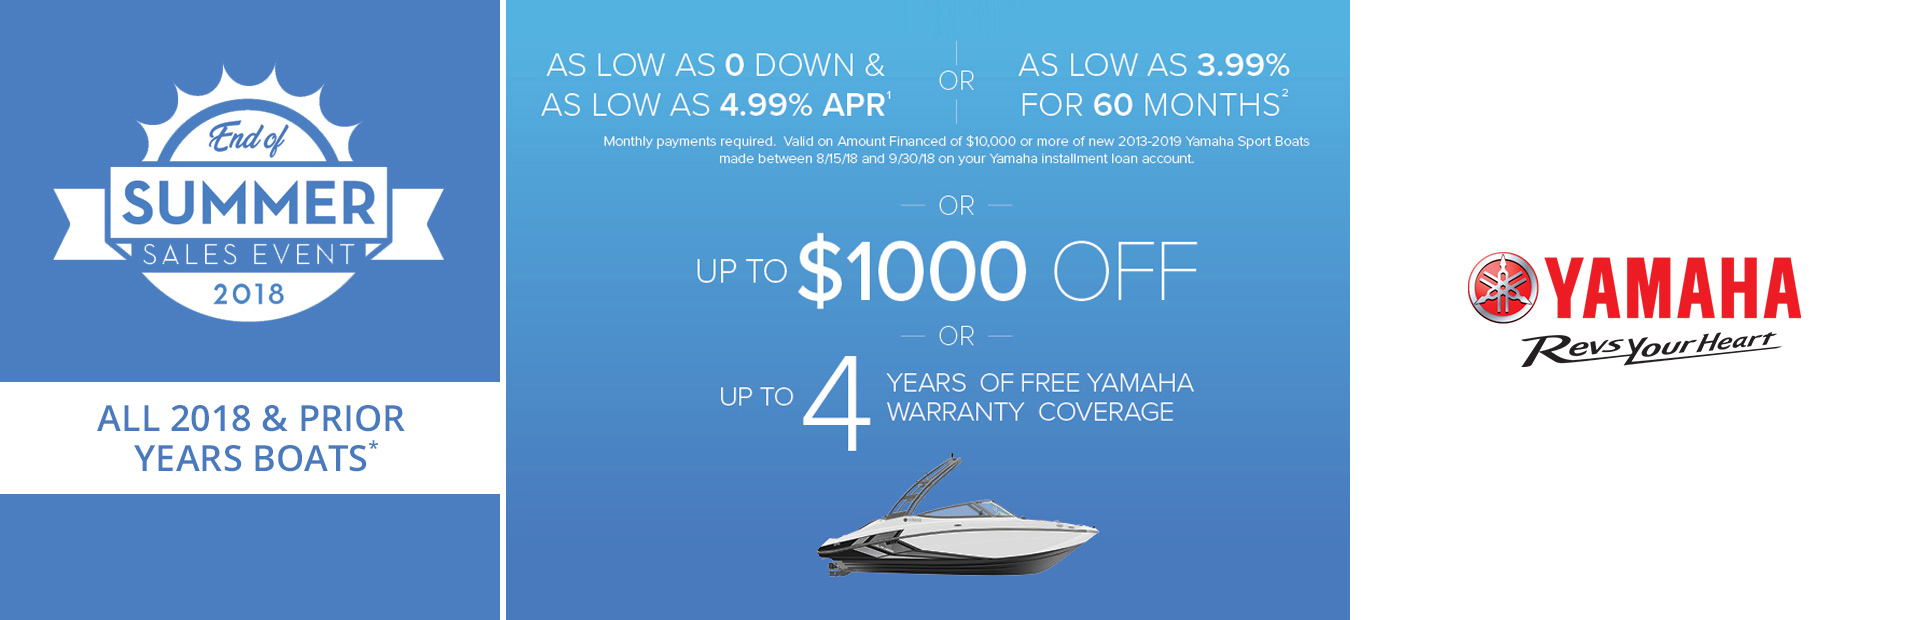 Yamaha: End of Summer Sales Event - 2018 & Prior Boats